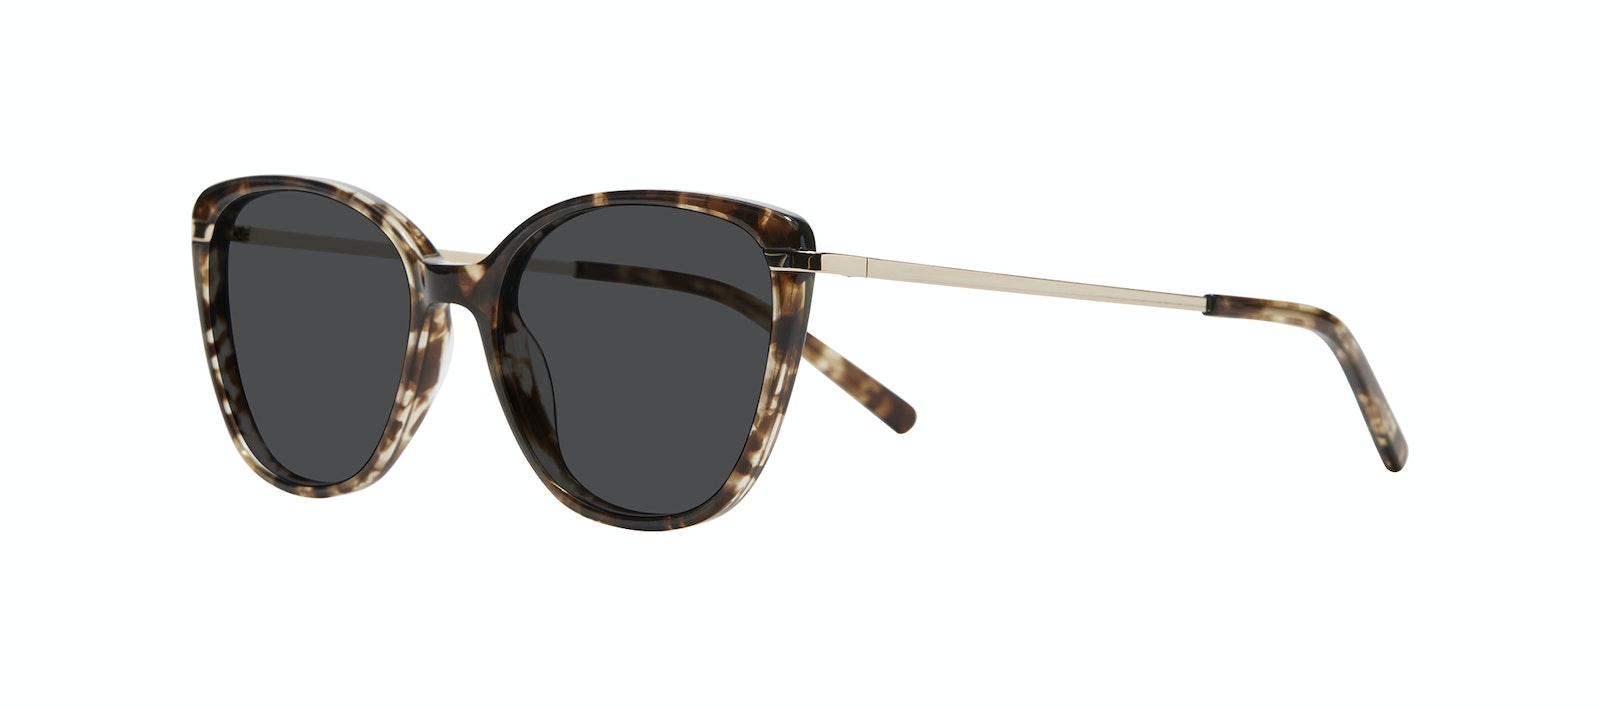 Affordable Fashion Glasses Rectangle Square Sunglasses Women Illusion M Leopard Tilt